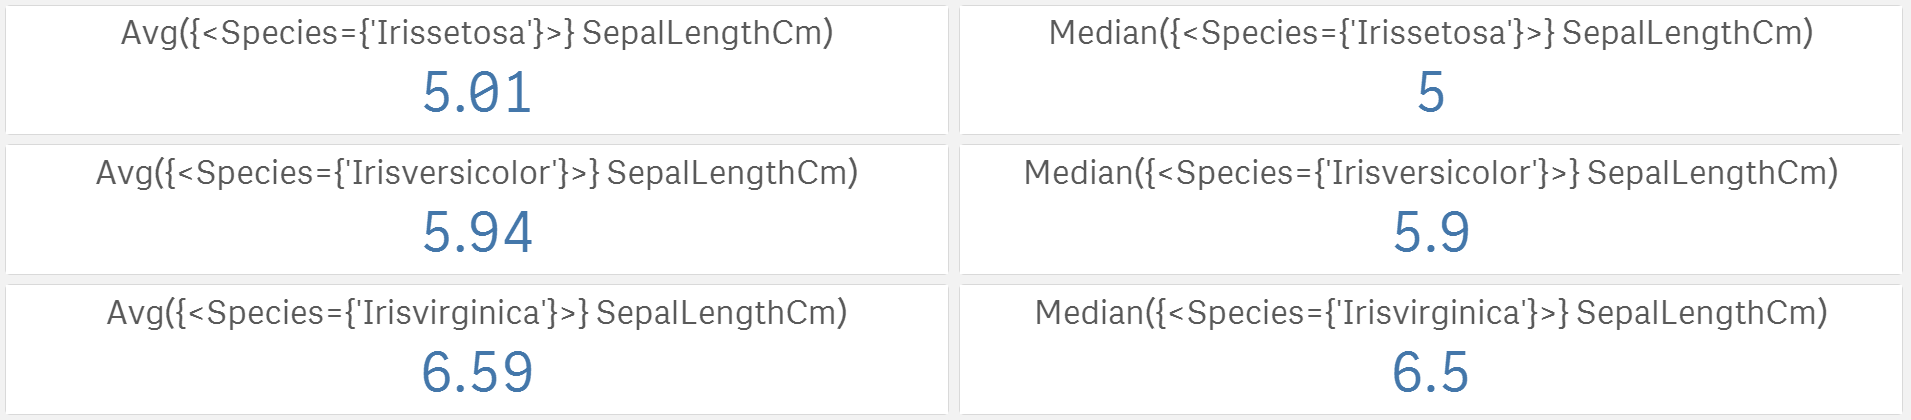 Averages and medians